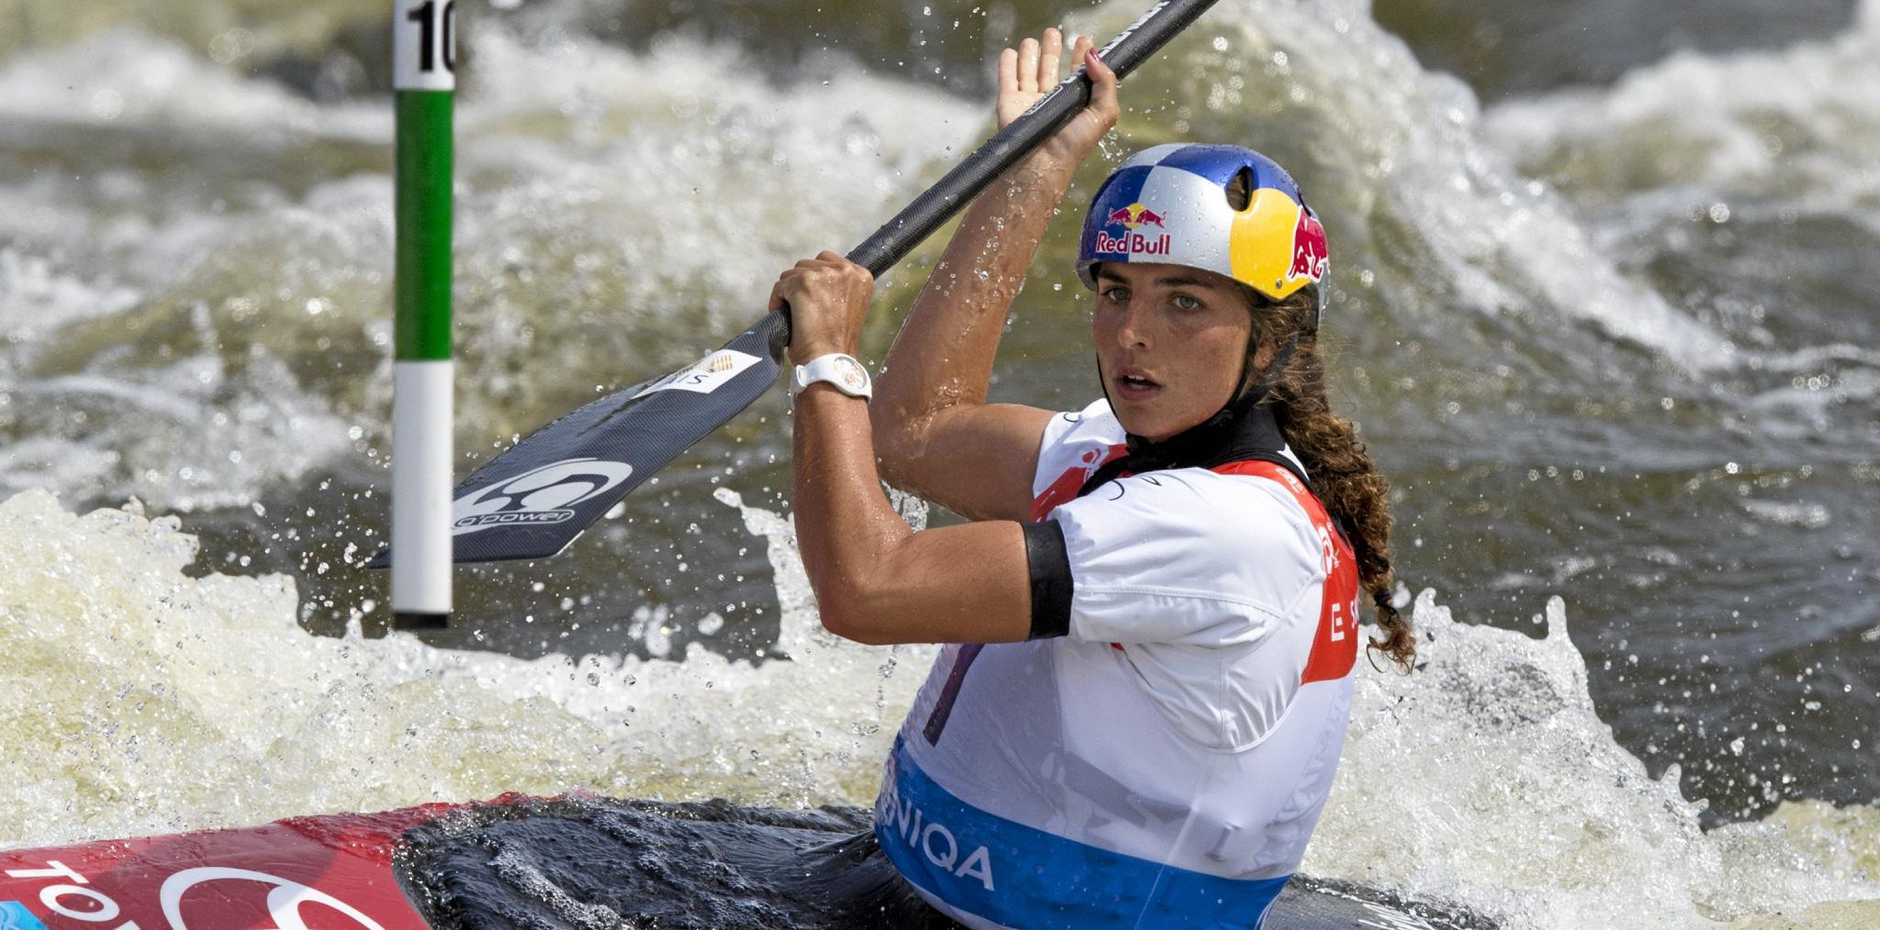 Jessica Fox in action at the 2016 World Cup in Prague.